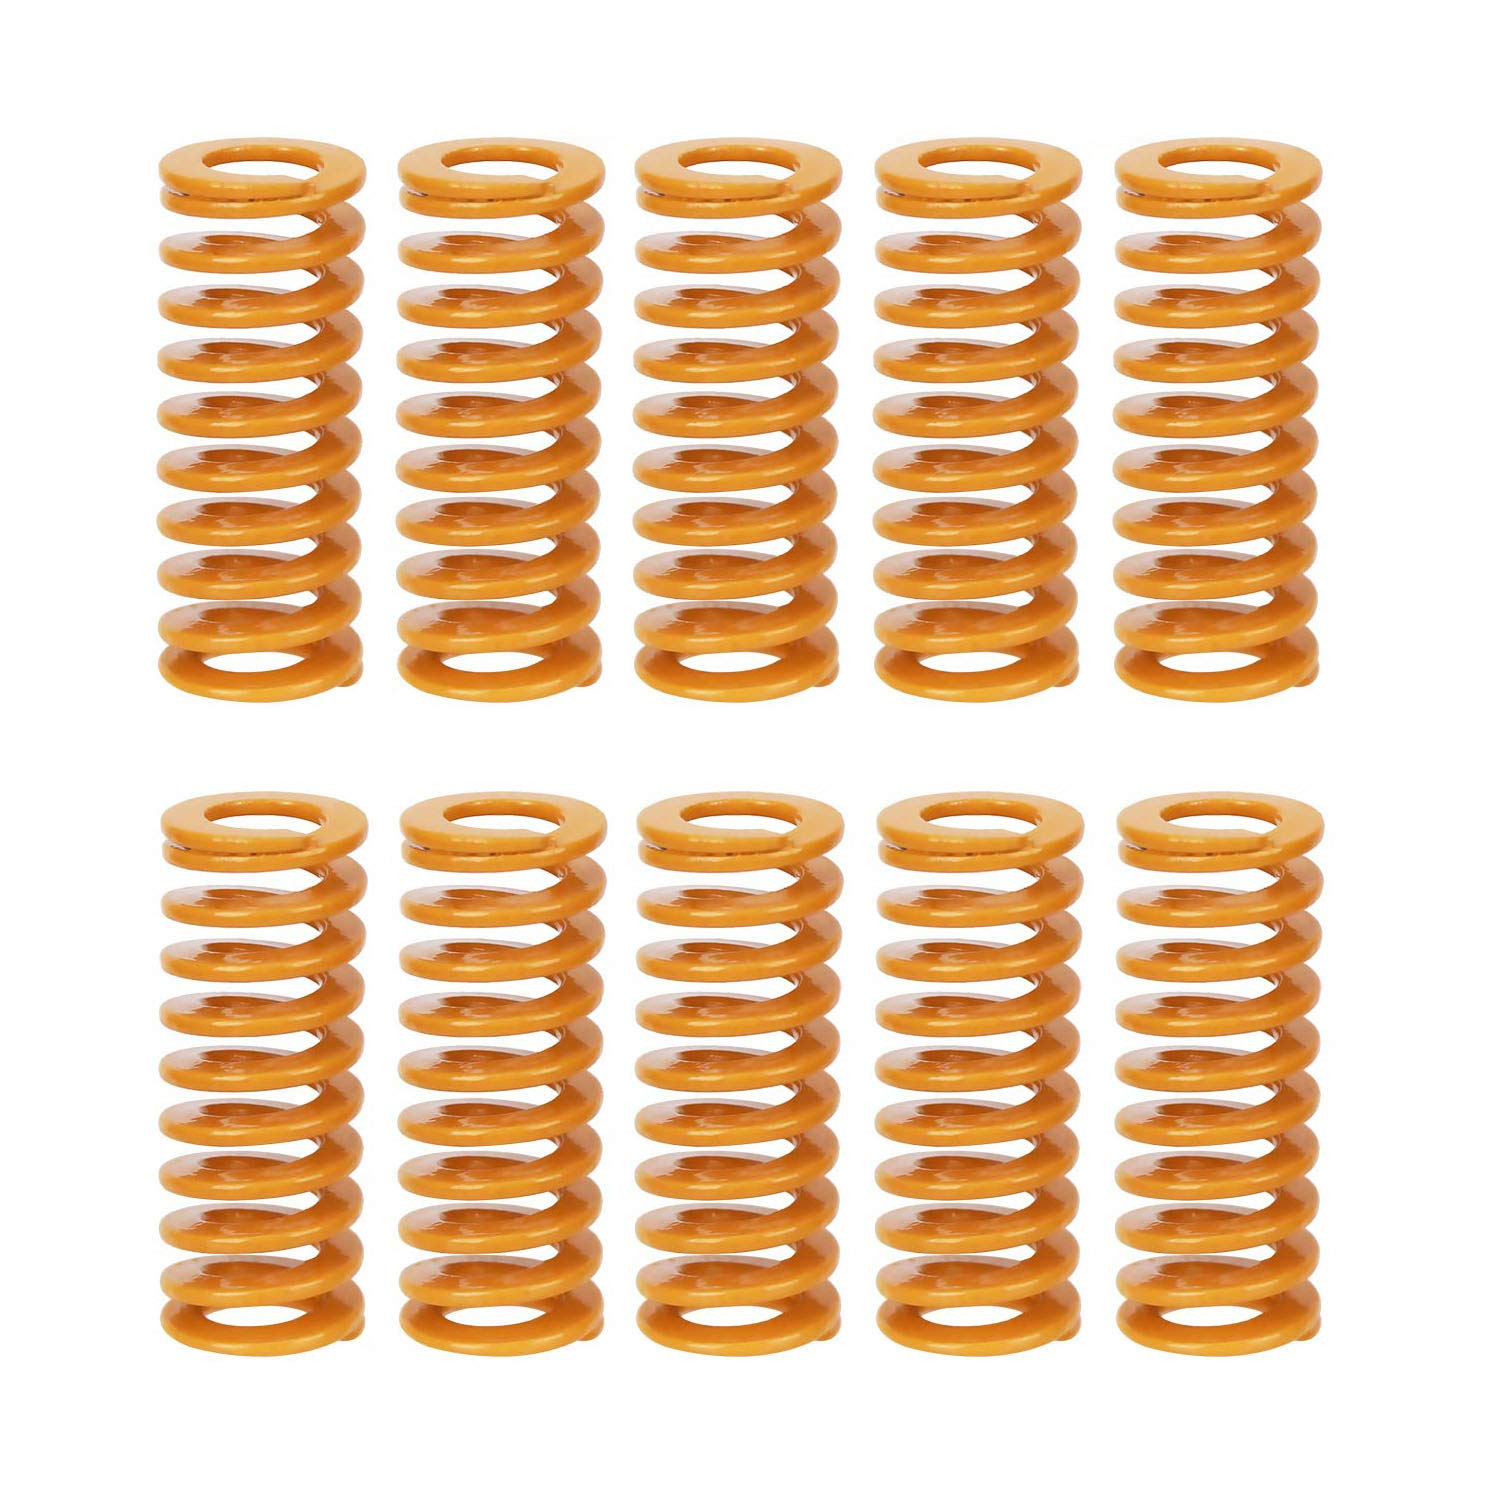 3D Printer Heat Bed Springs Compression Springs Bottom Connect Leveling M3 Screw Light Load for Creality CR-10 10S S4 Ender 3 Ender 3 Pro